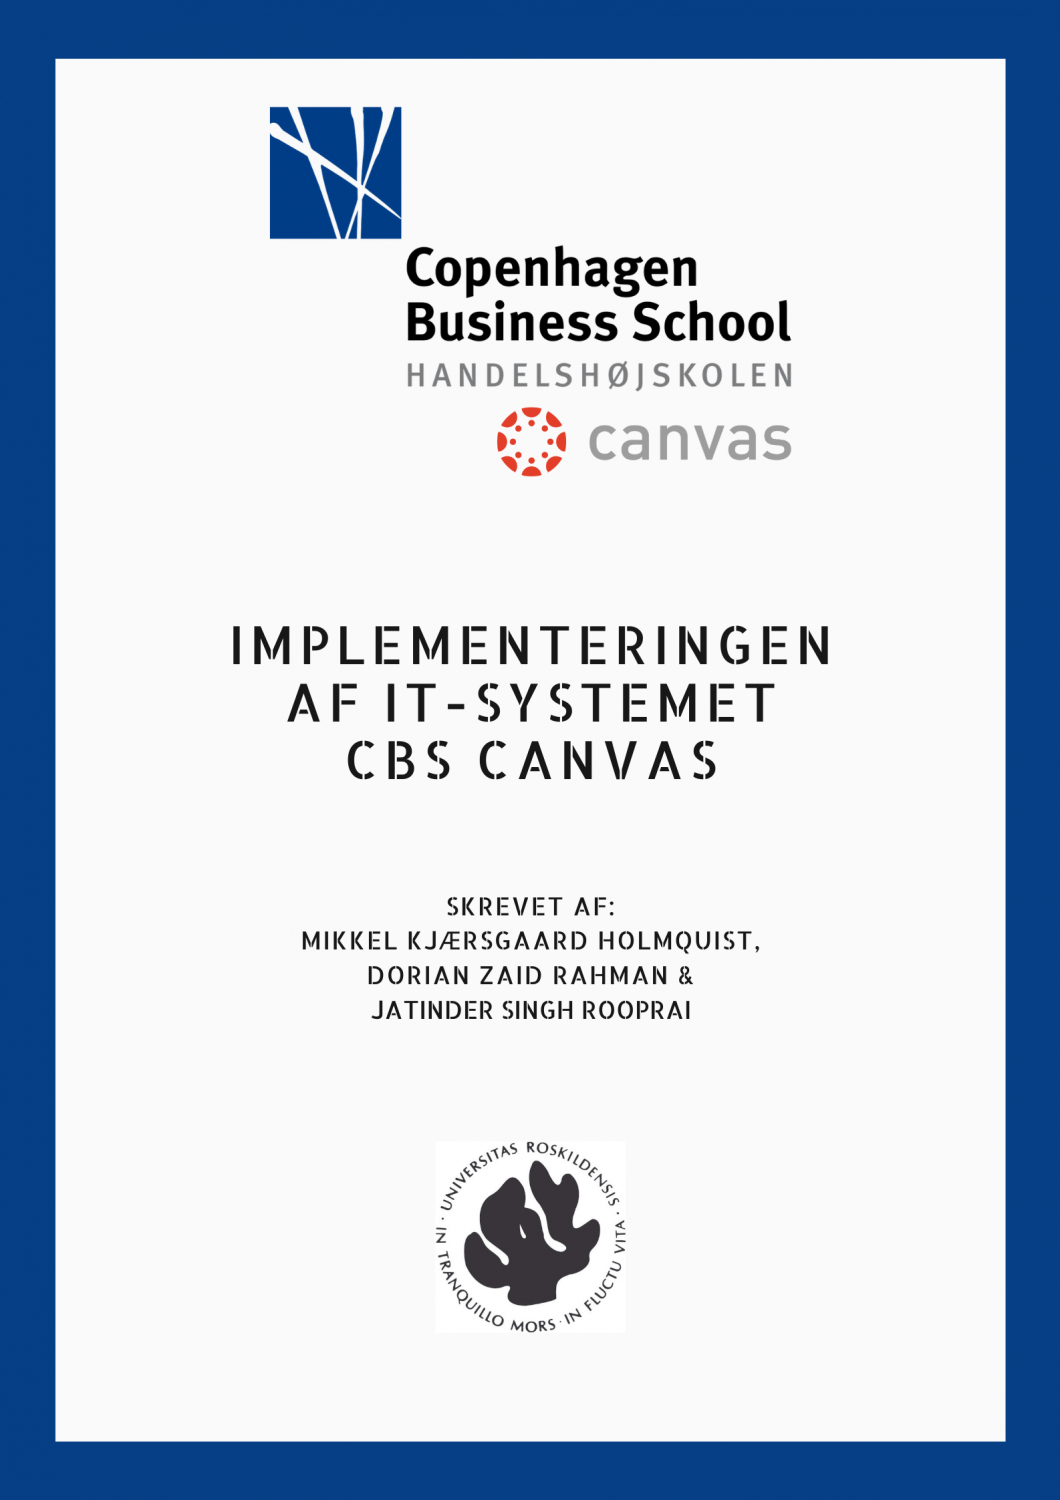 Implementeringen af CBS Canvas